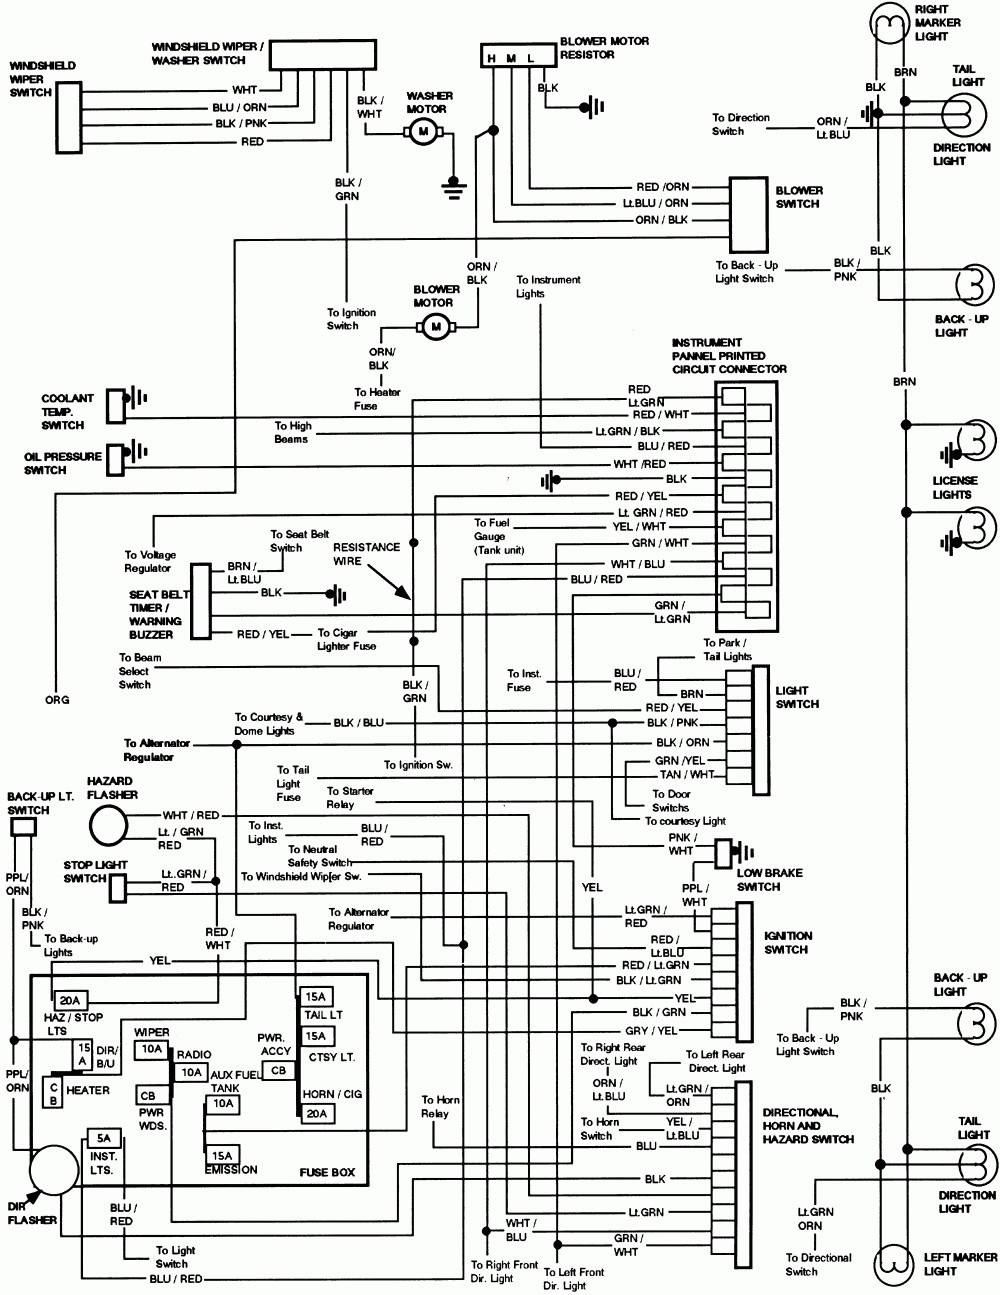 medium resolution of 1976 ford solenoid wiring diagram data diagram schematic ford bronco starter solenoid wiring